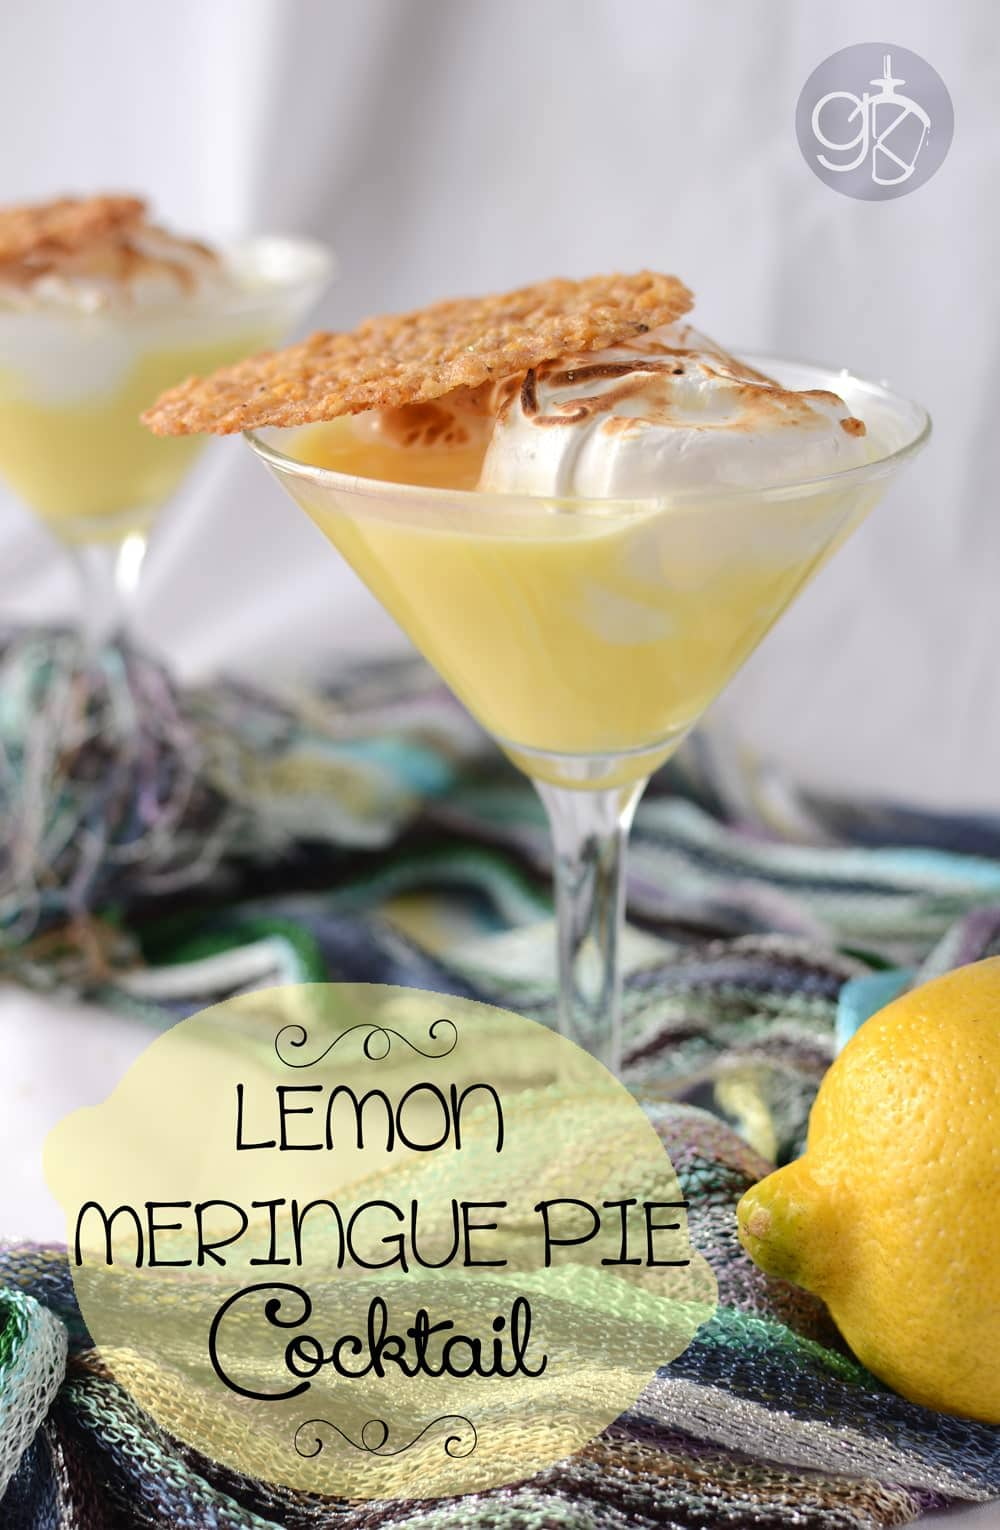 "Lemon Meringue Pie Cocktail - A fusion of a cocktail and Lemon Meringue Pie, this Lemon Meringue Cocktail is creamy, topped with a sweet meringue and a lemon and oat lace cookie ""crust""."